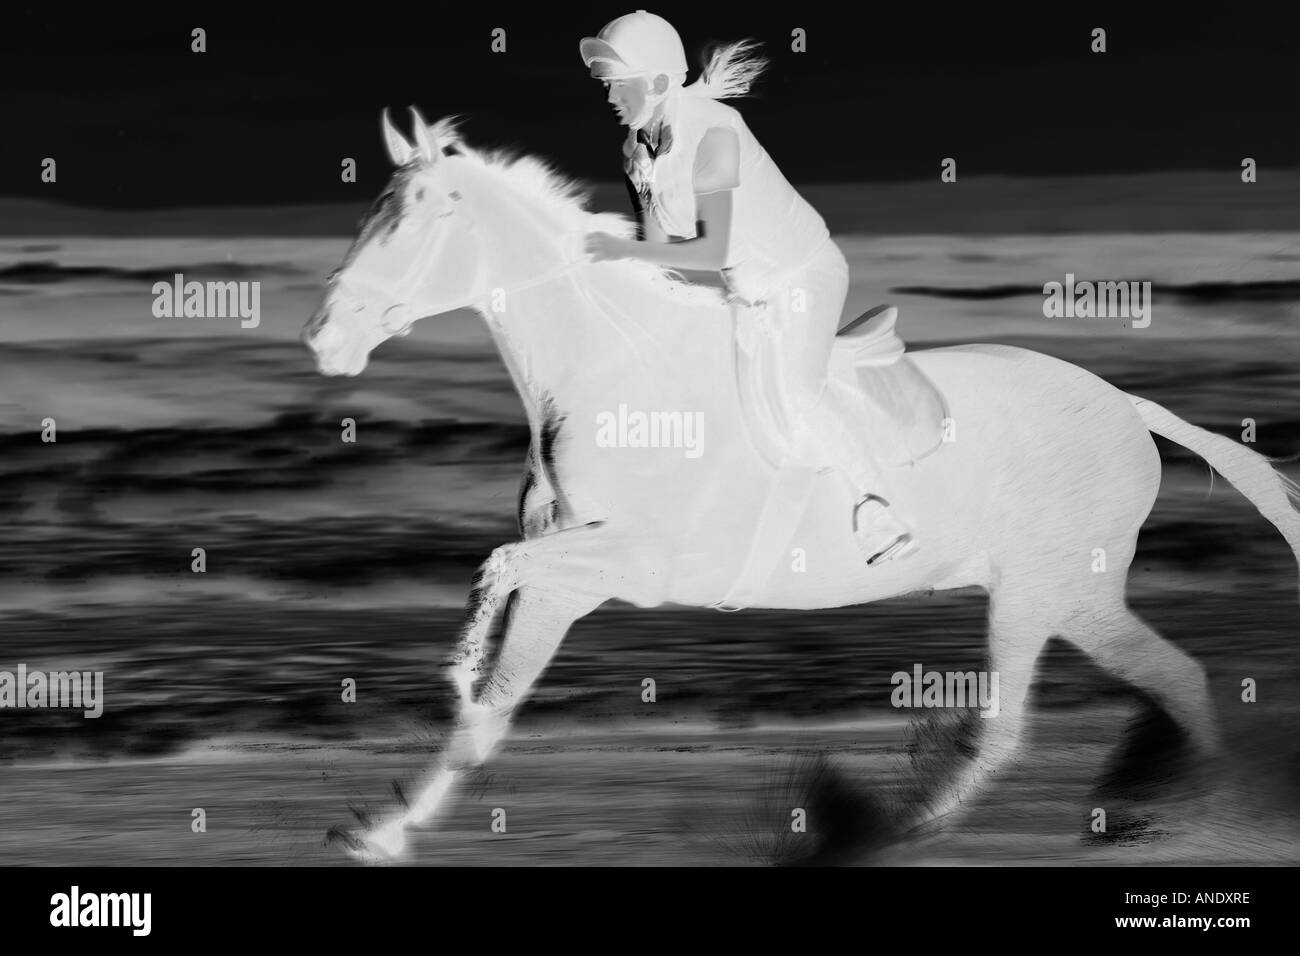 Woman rides horse at a gallop through the waves on Broad Haven Beach Wales United Kingdom - Stock Image